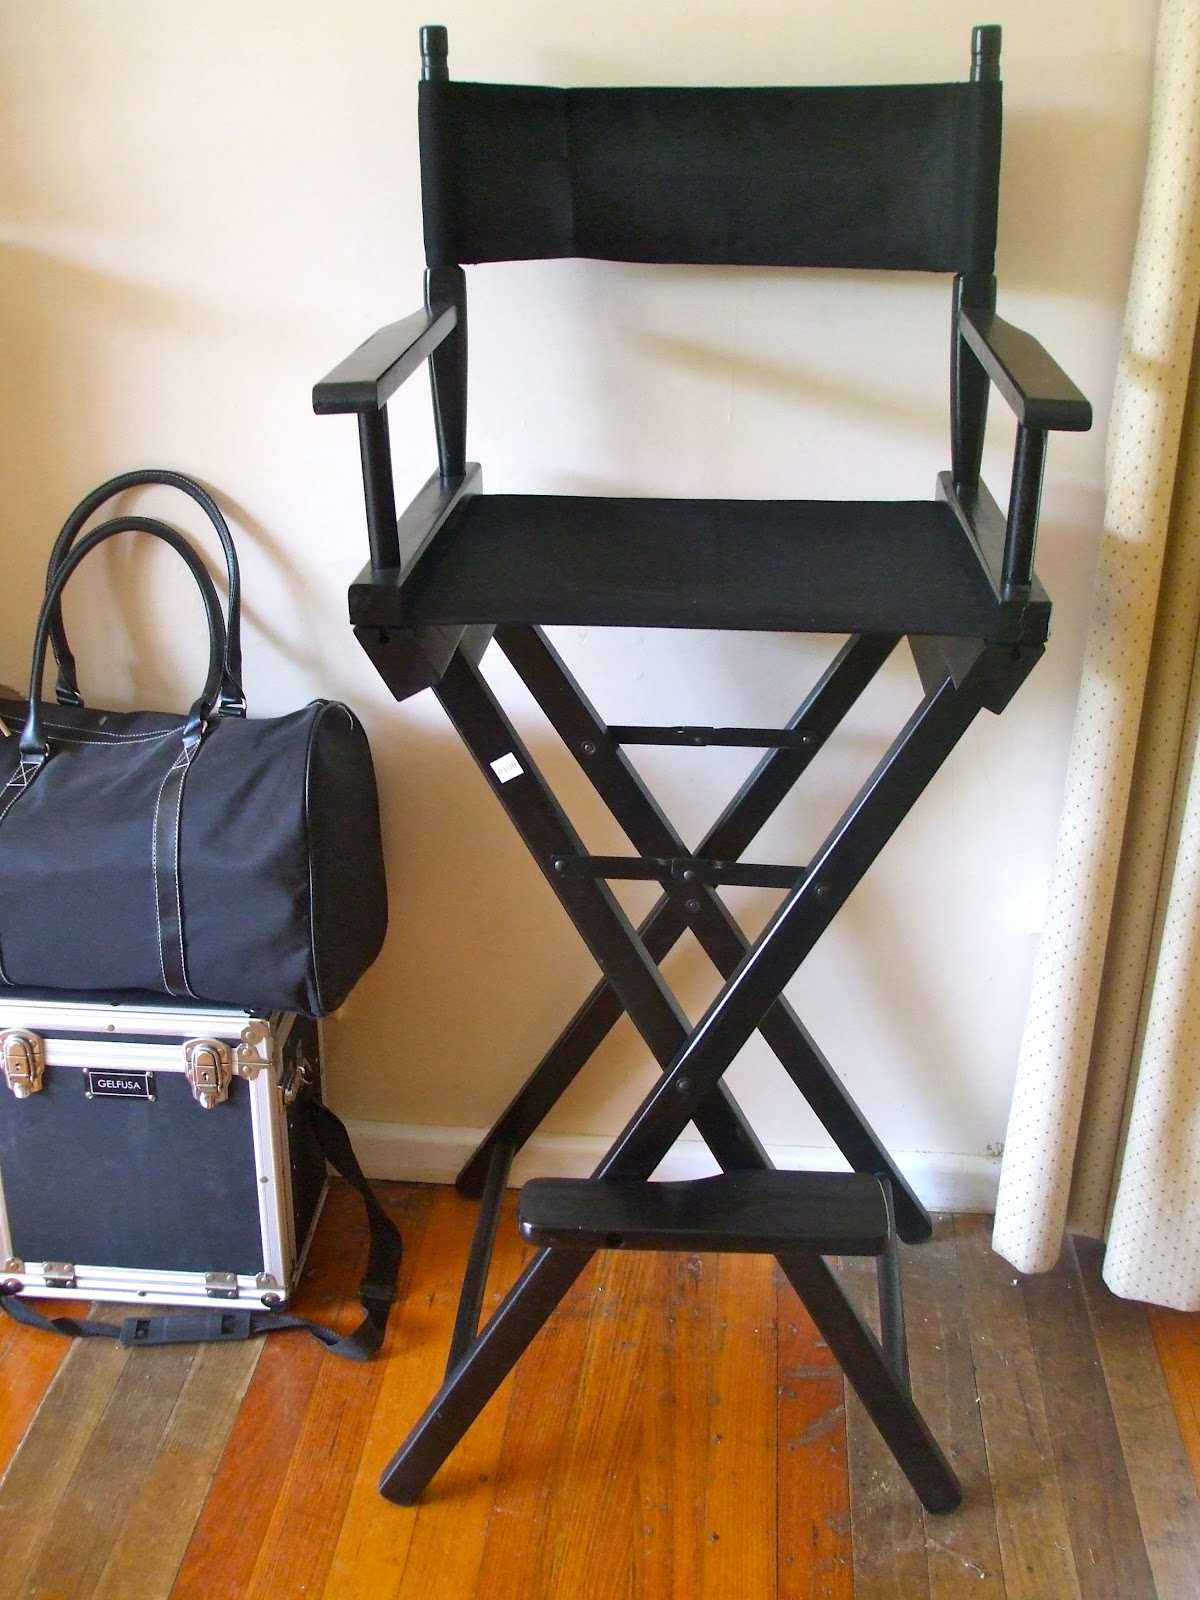 The Make Up Chair